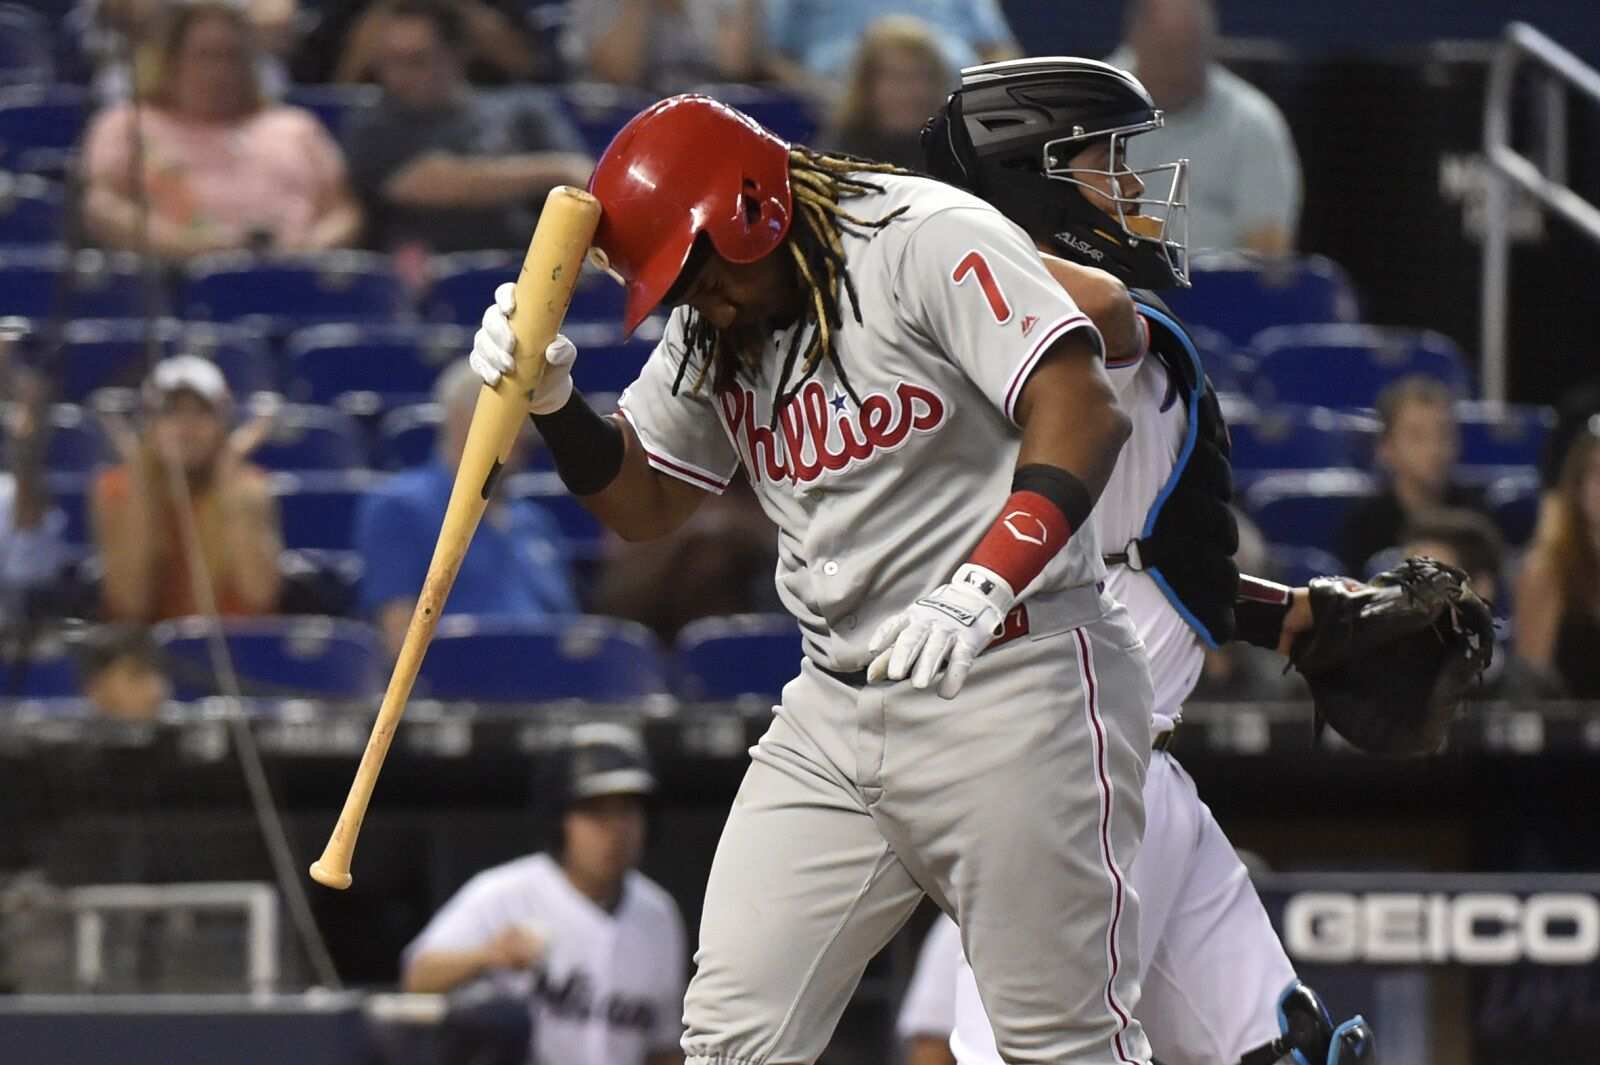 Phillies should never let Maikel Franco play in MLB again